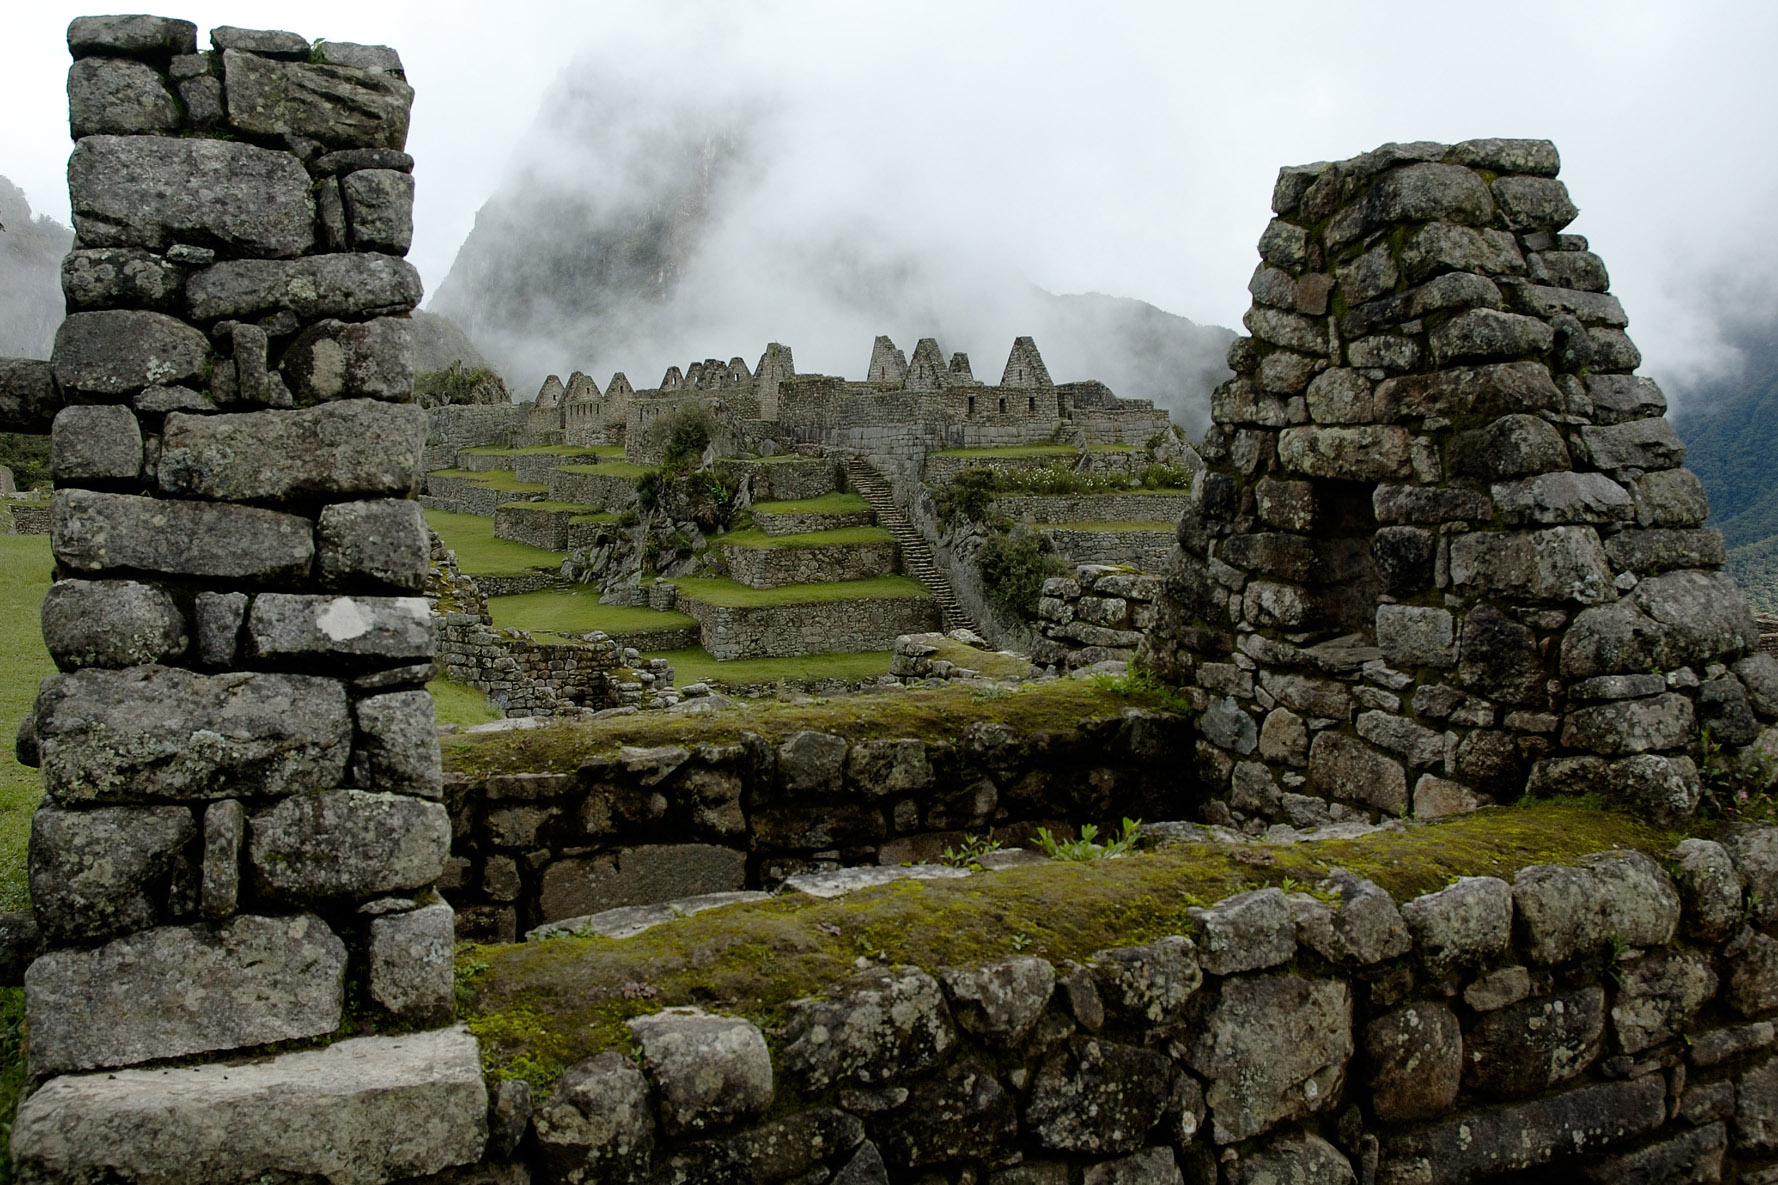 Machu Picchu was constructed on two fault lines